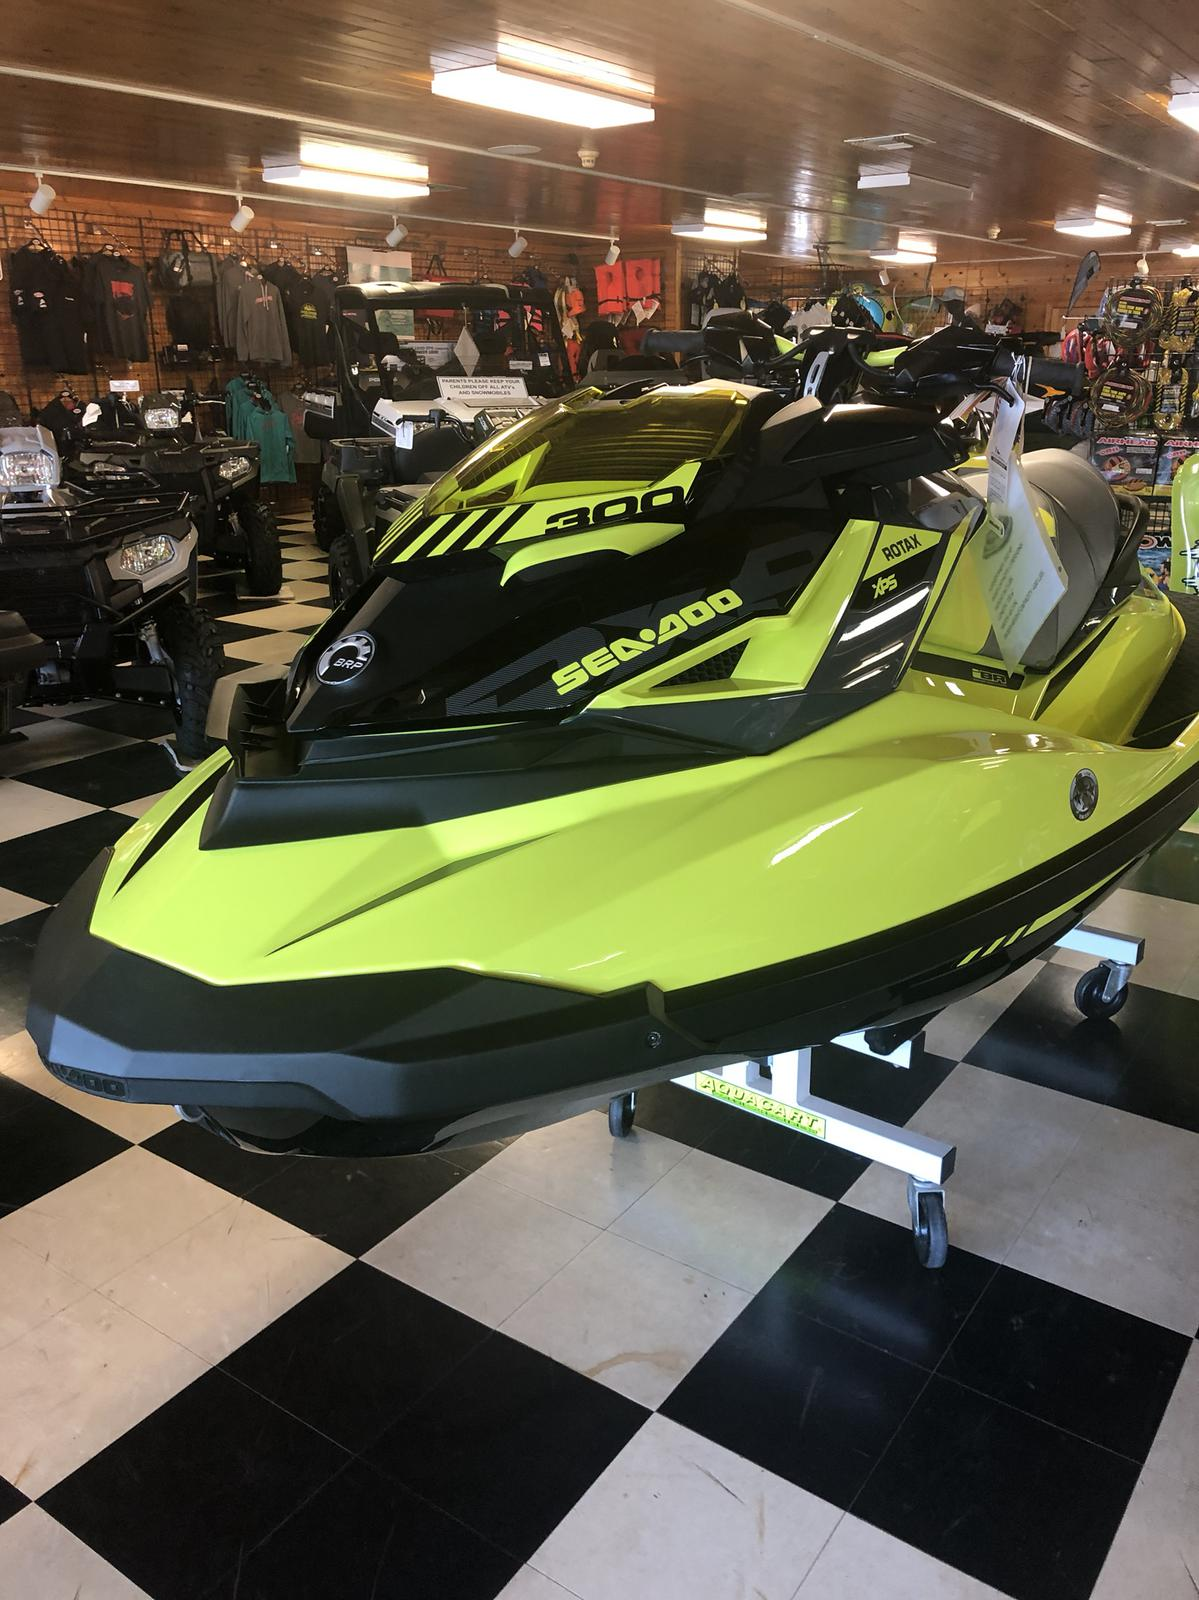 Inventory from Sea-Doo and Can-Am Track Side Eagle River, WI